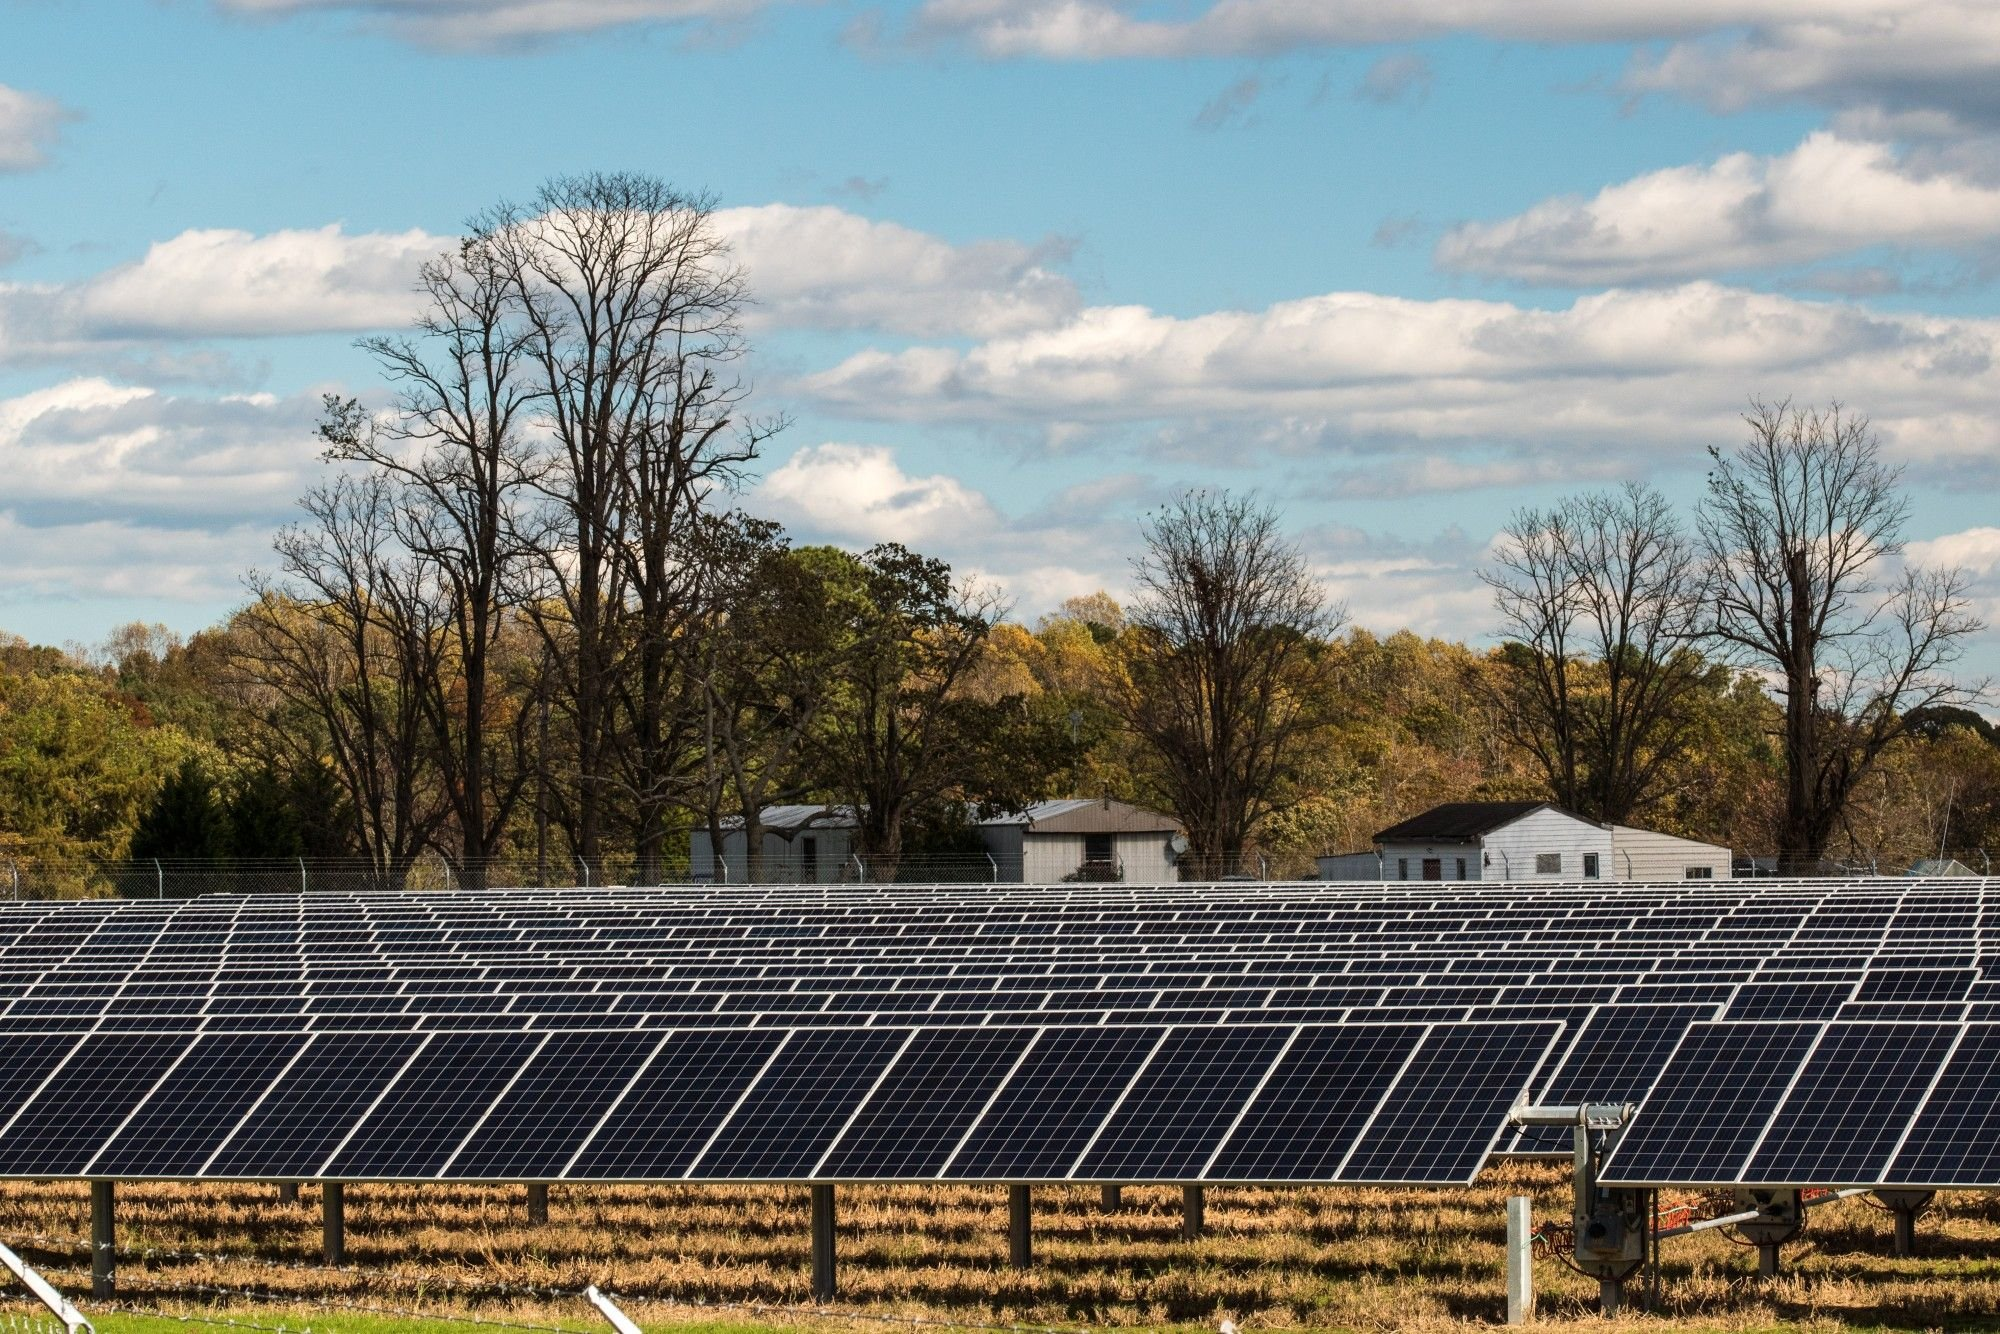 Facebook and Dominion have reunited for more solar power in Virginia.